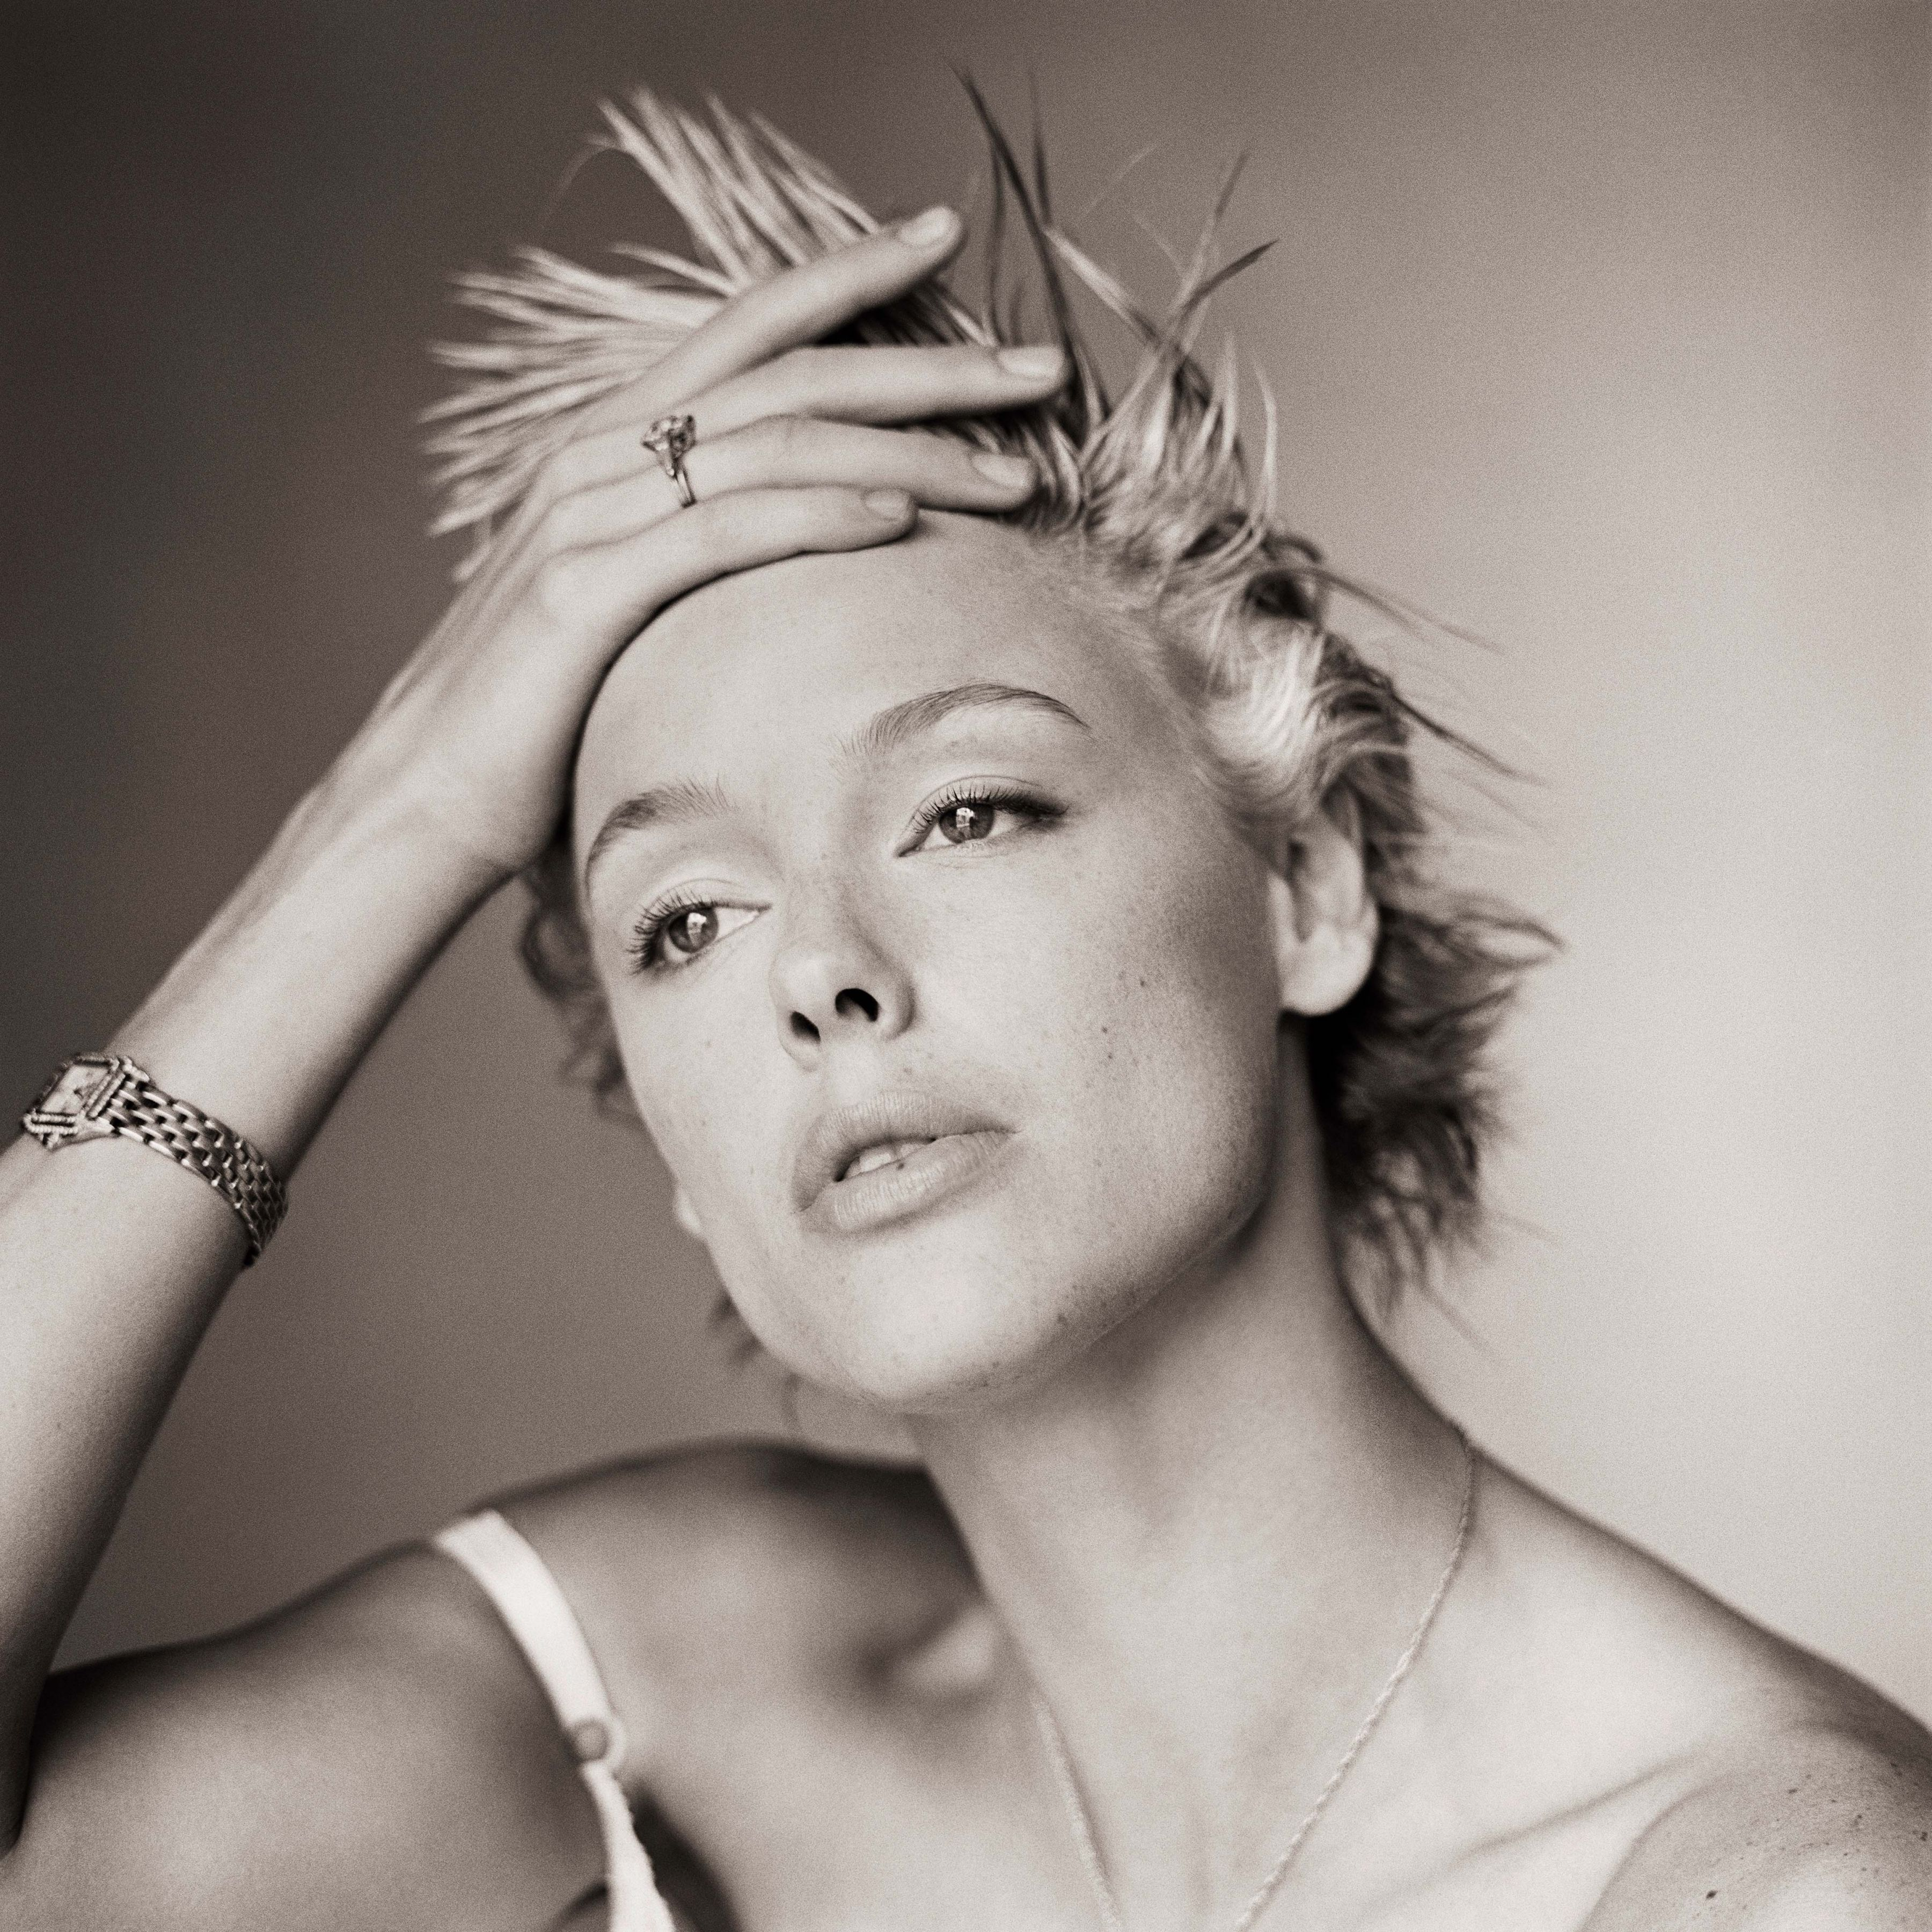 Brigitte Nielsen, Without Makeup I, Los Angeles, 1986, Archival Pigment Print